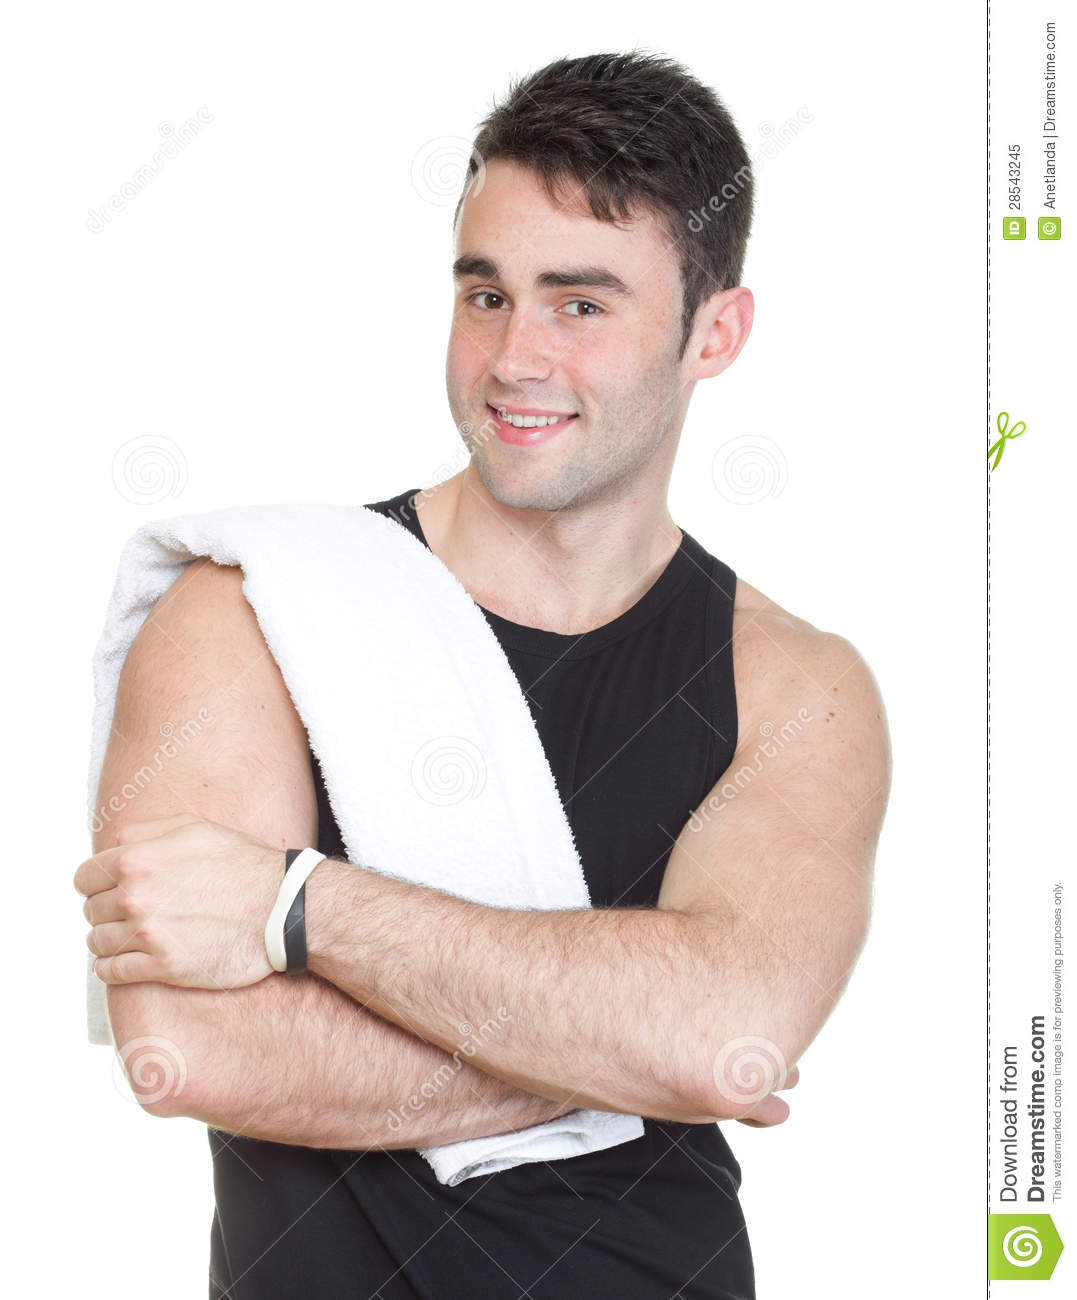 healthy-young-man-towel-isolated-28543245.jpg